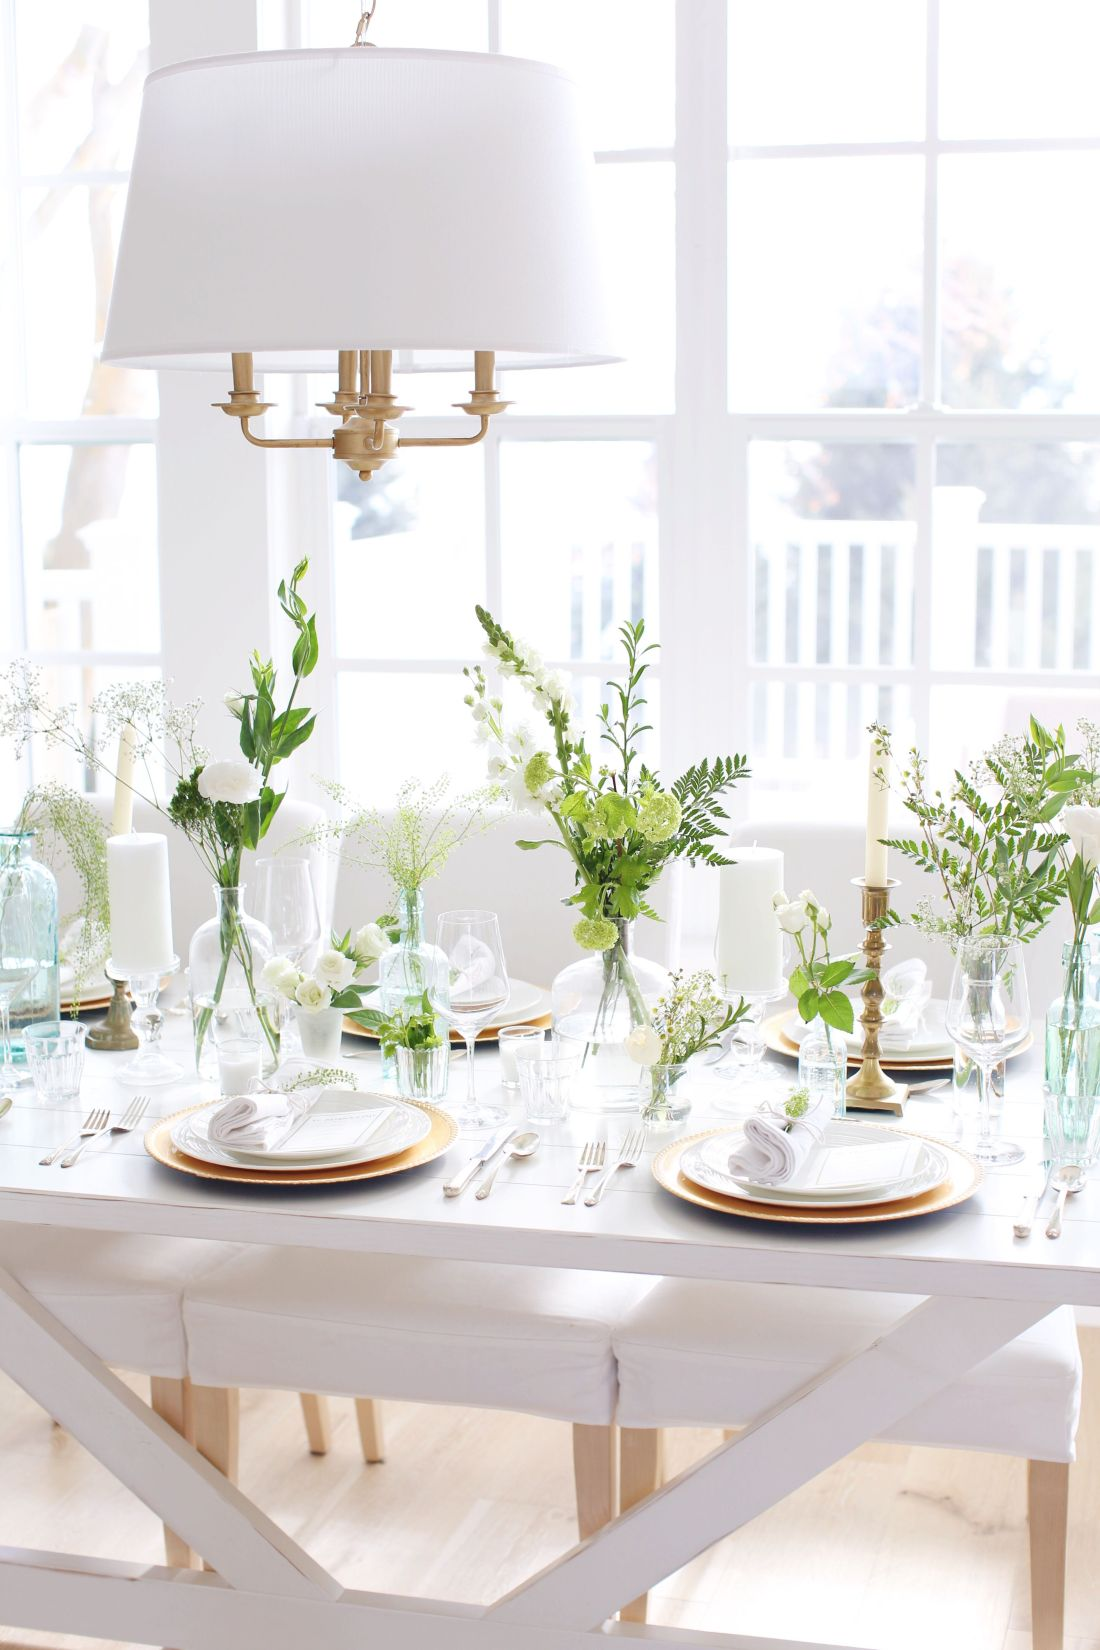 St. Patrick's Day Table Setting inspiration with gold chargers, greenery, green glass and white linens - that is also perfect for a light green and white wedding or dinner party.